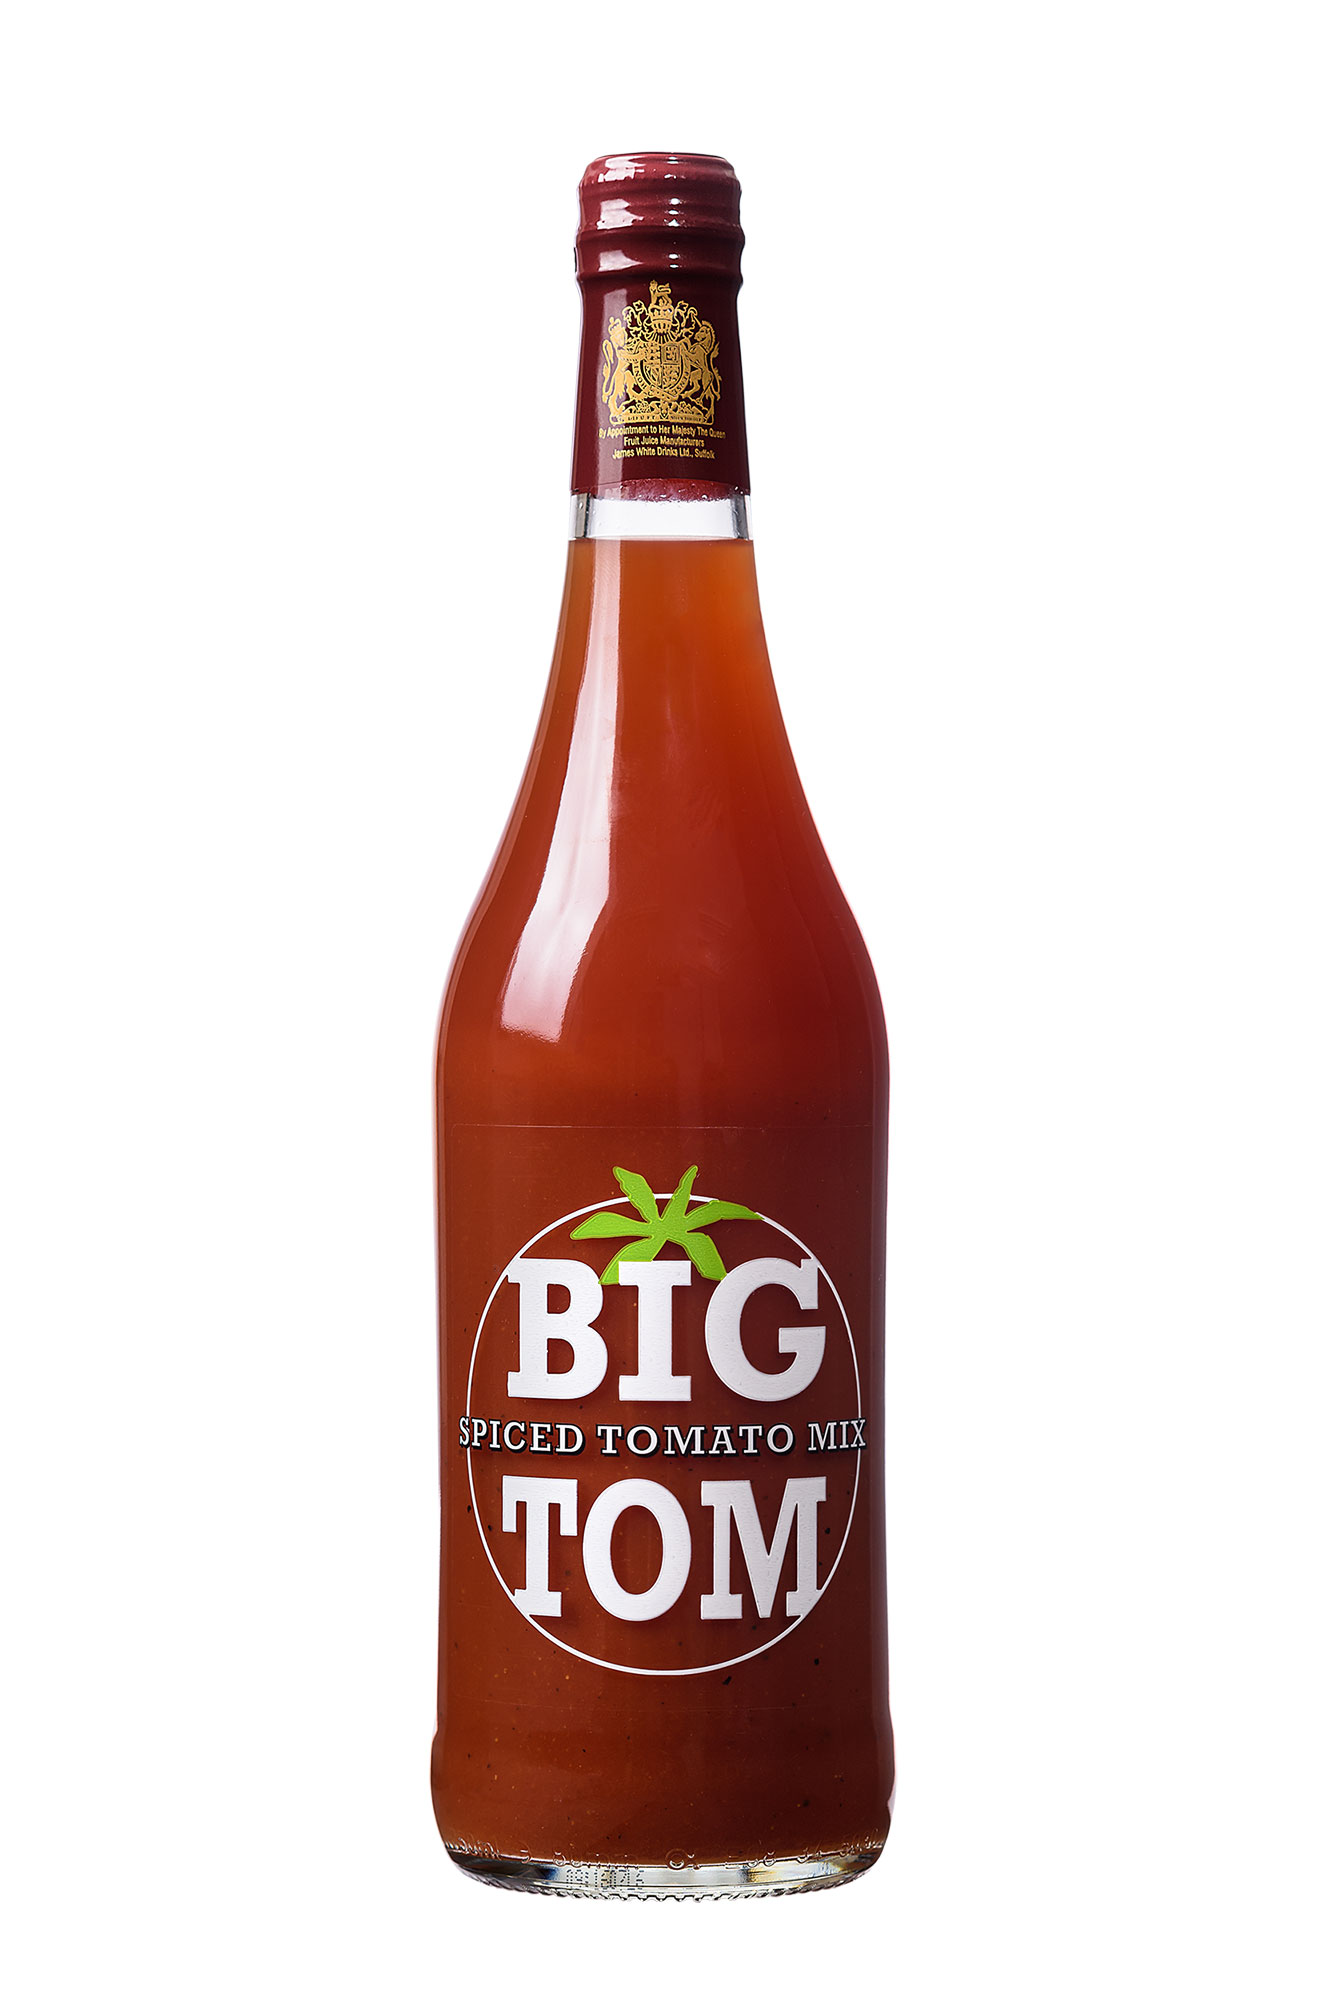 Big Tom 750ml Glass Bottle - When you just can't get enough Big Tom, our 750ml bottle is the ideal size for a good flow of spicy tomato mix.